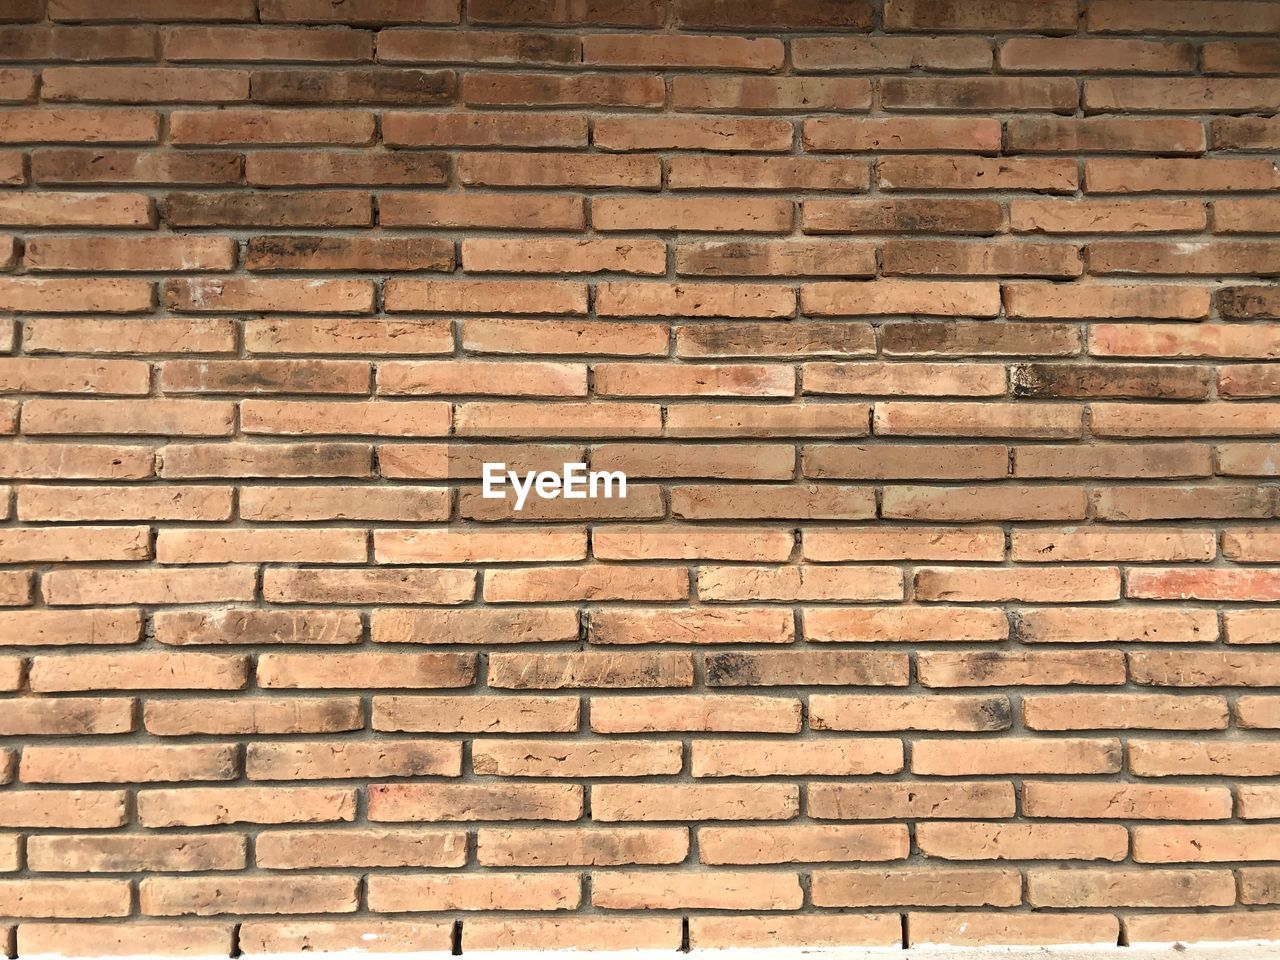 backgrounds, full frame, brick, architecture, brick wall, pattern, wall, built structure, brown, textured, wall - building feature, no people, building exterior, construction material, day, side by side, outdoors, close-up, repetition, old, textured effect